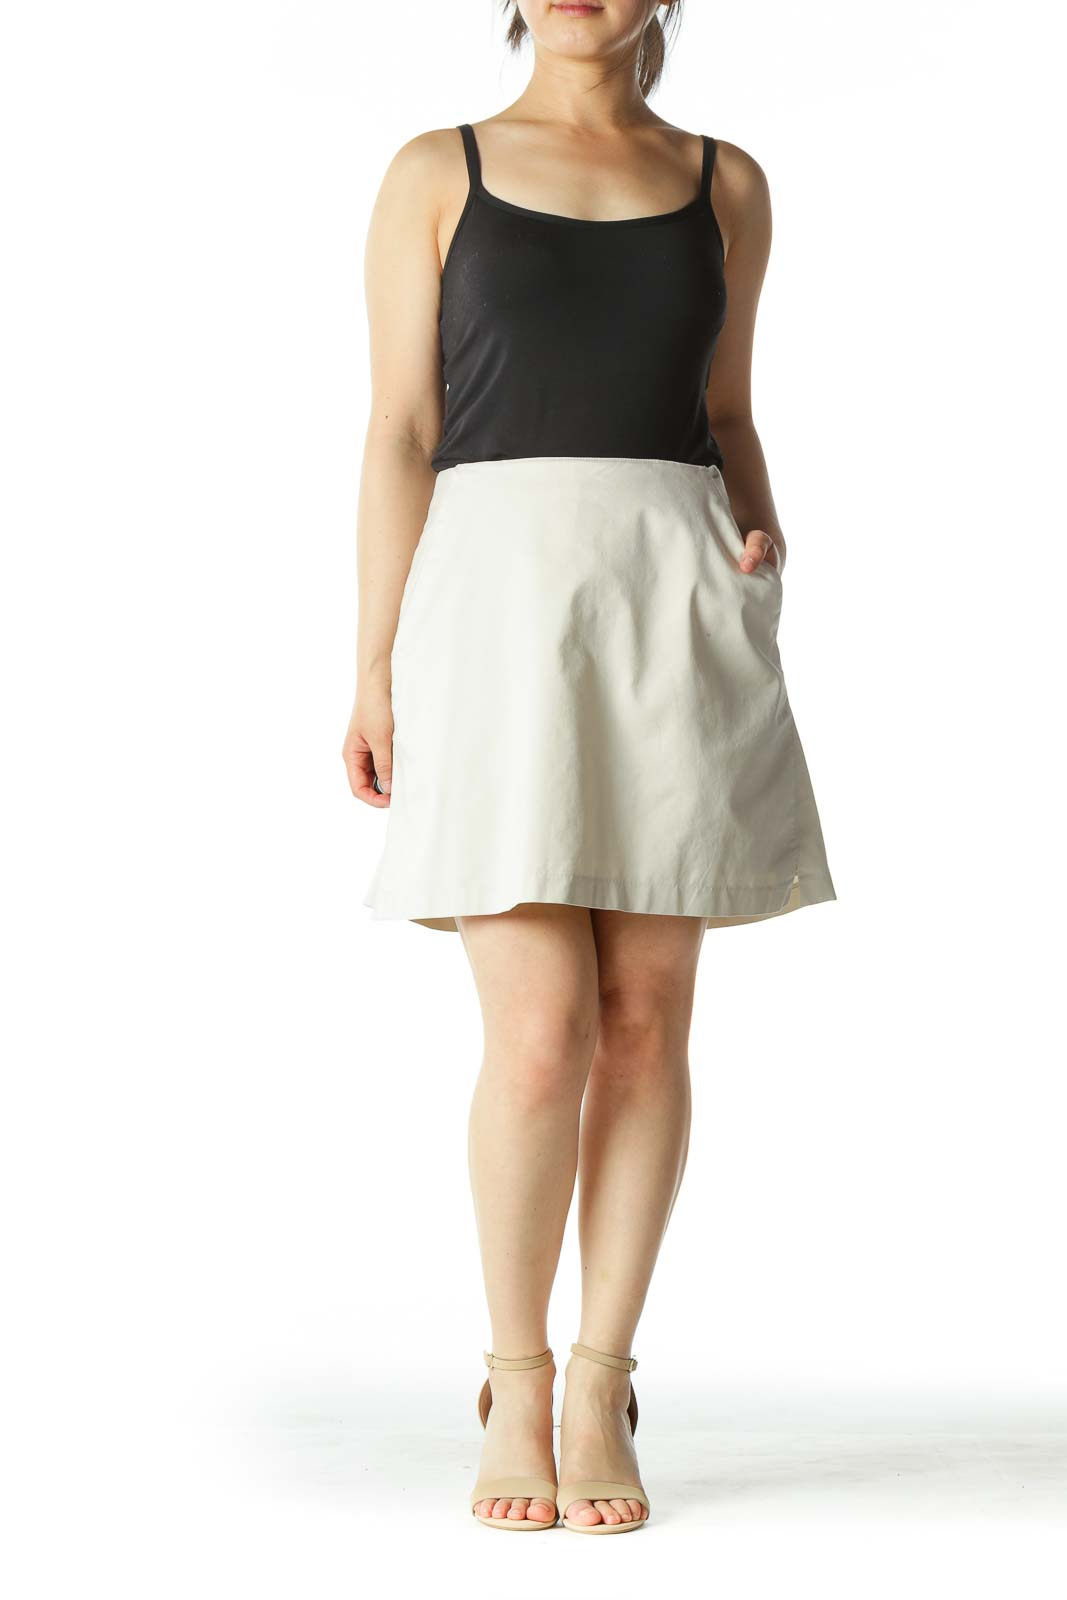 Beige Tennis Skirt with Shorts